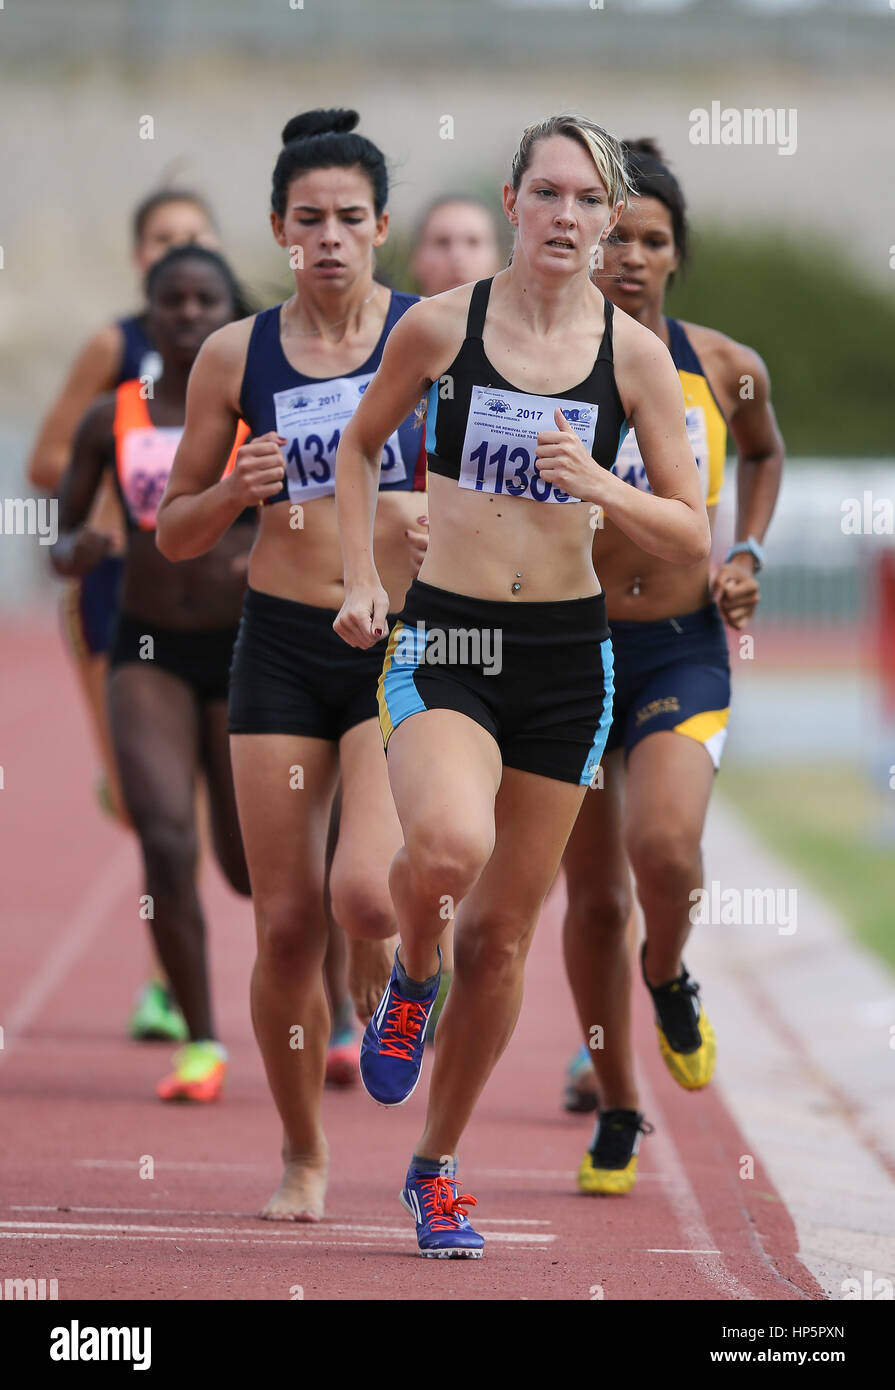 Cape Town, Sud Africa. 18 Febbraio, 2017. Icarian van Deventer di Tygerberg Athletic Club in campo femminile 800m Foto Stock